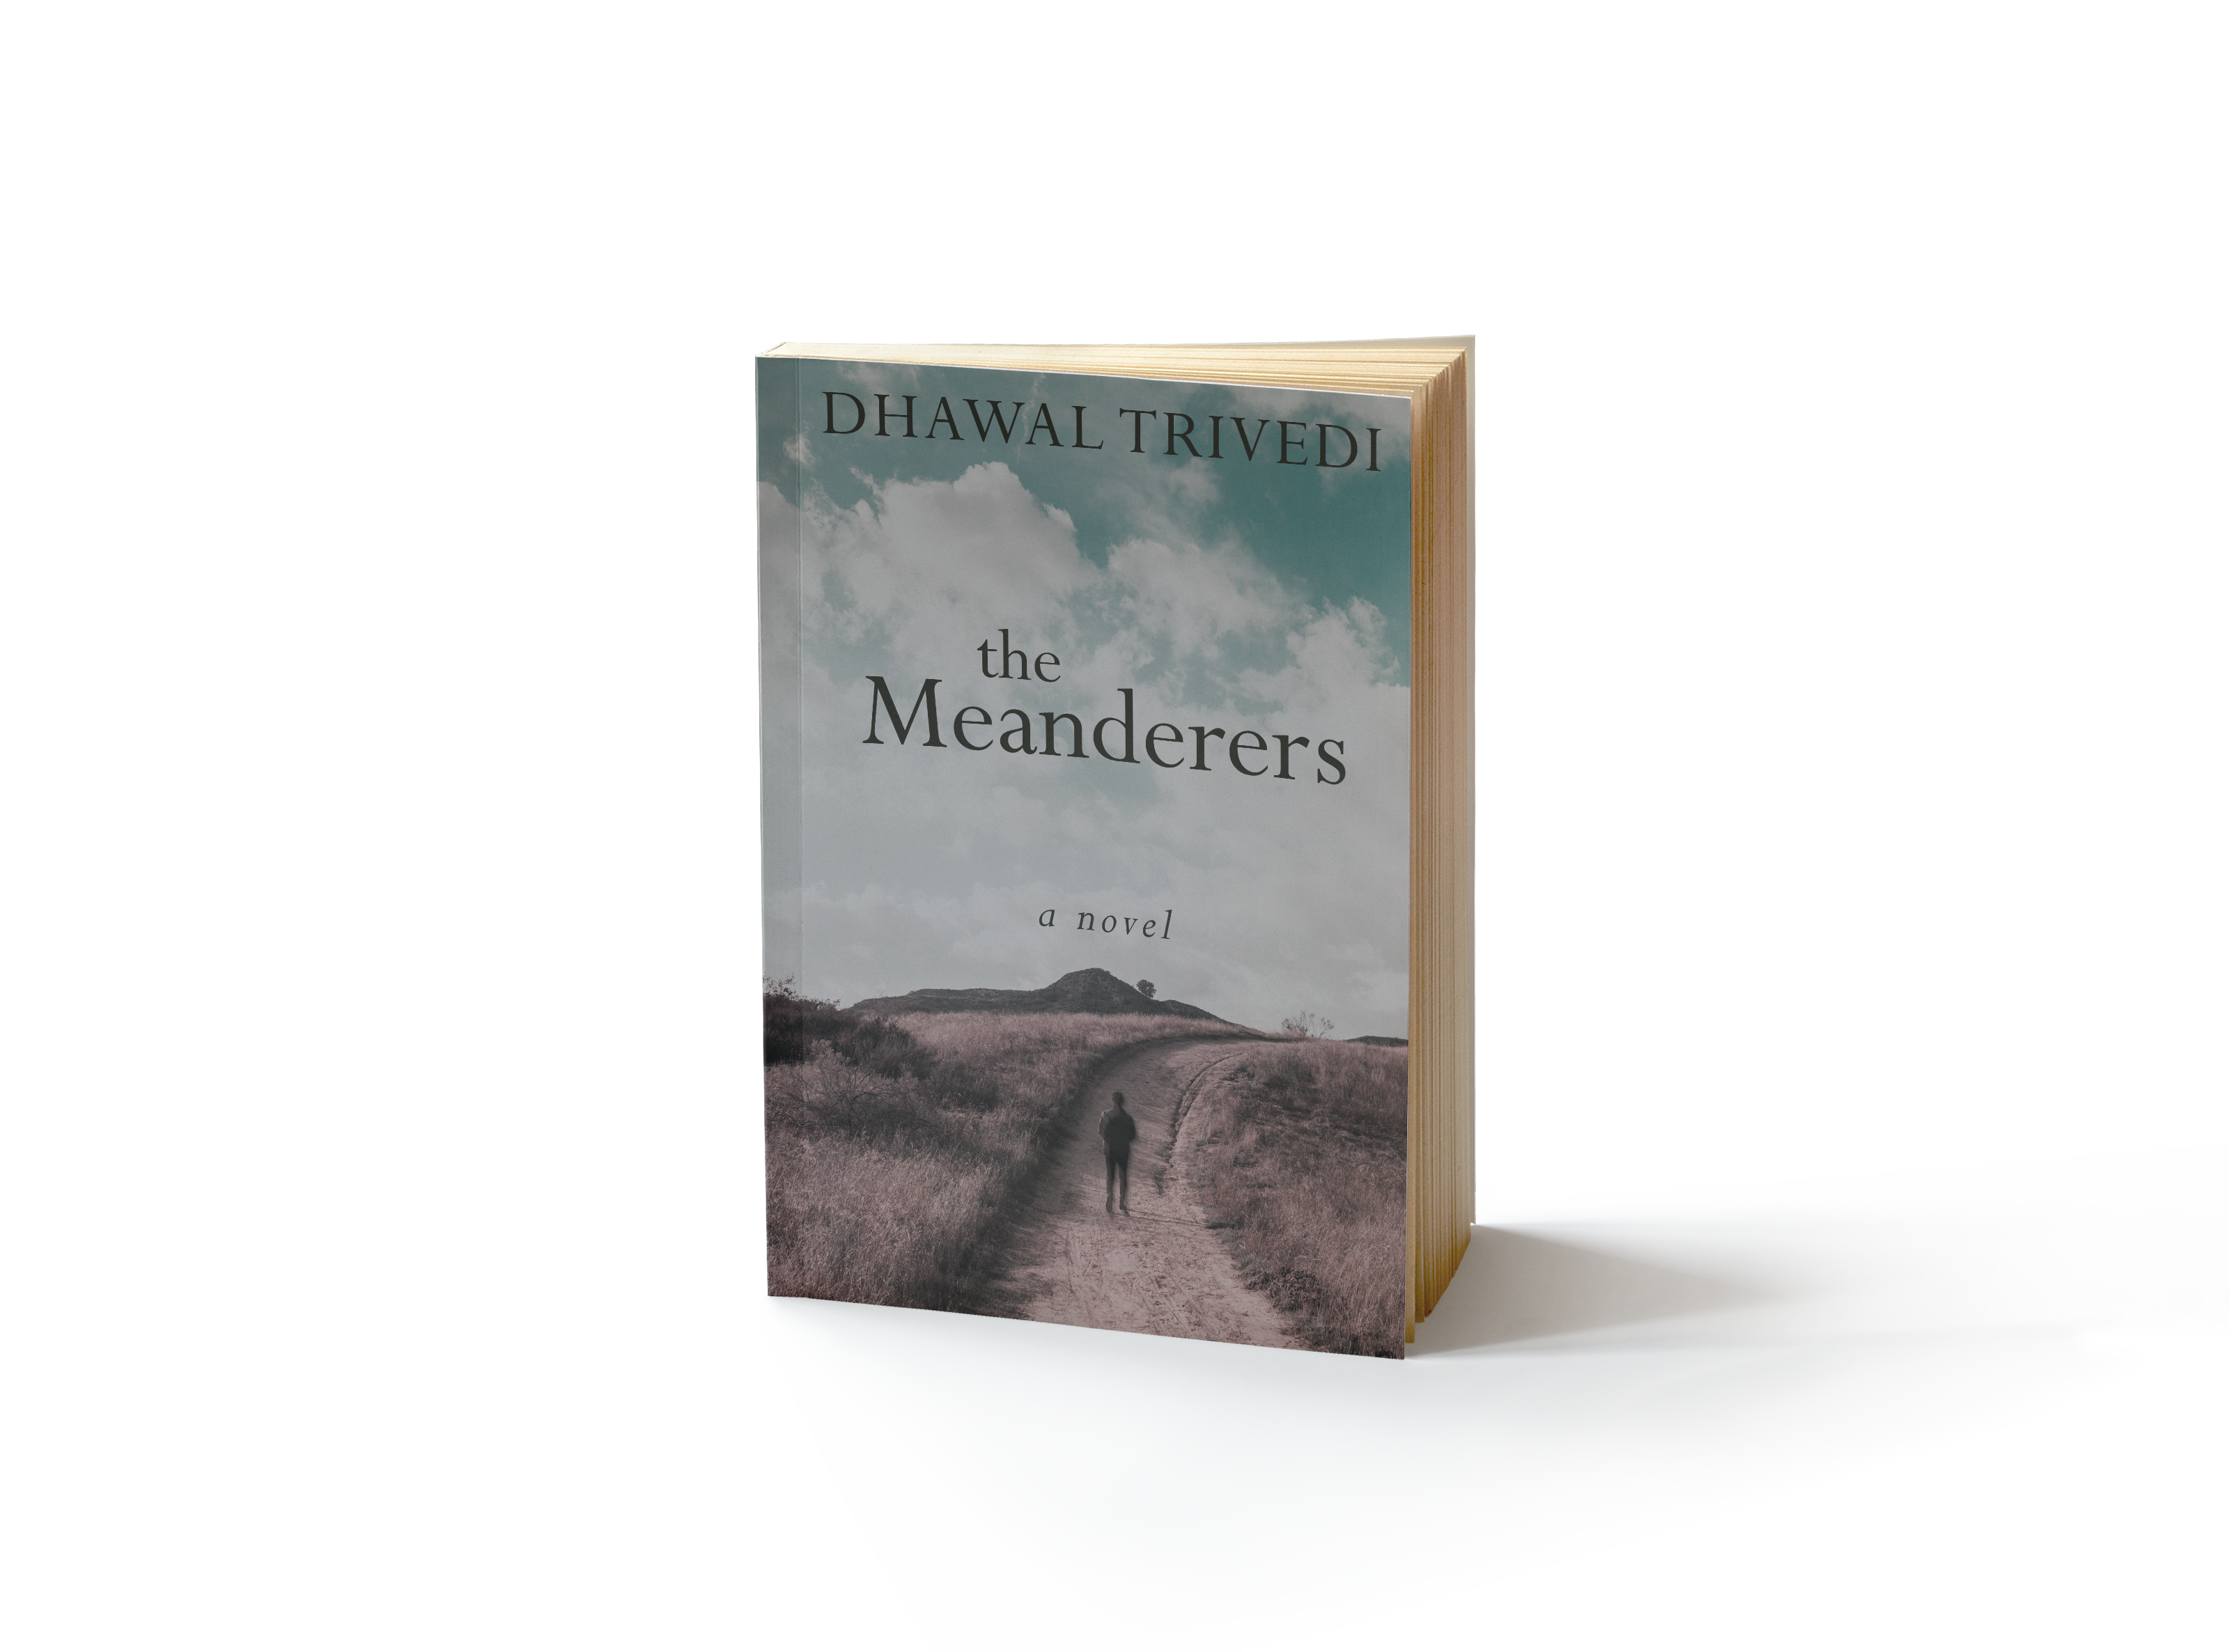 The Meanderers – A Novel by Dhawal Trivedi, releases worldwide 20th July 2018 21